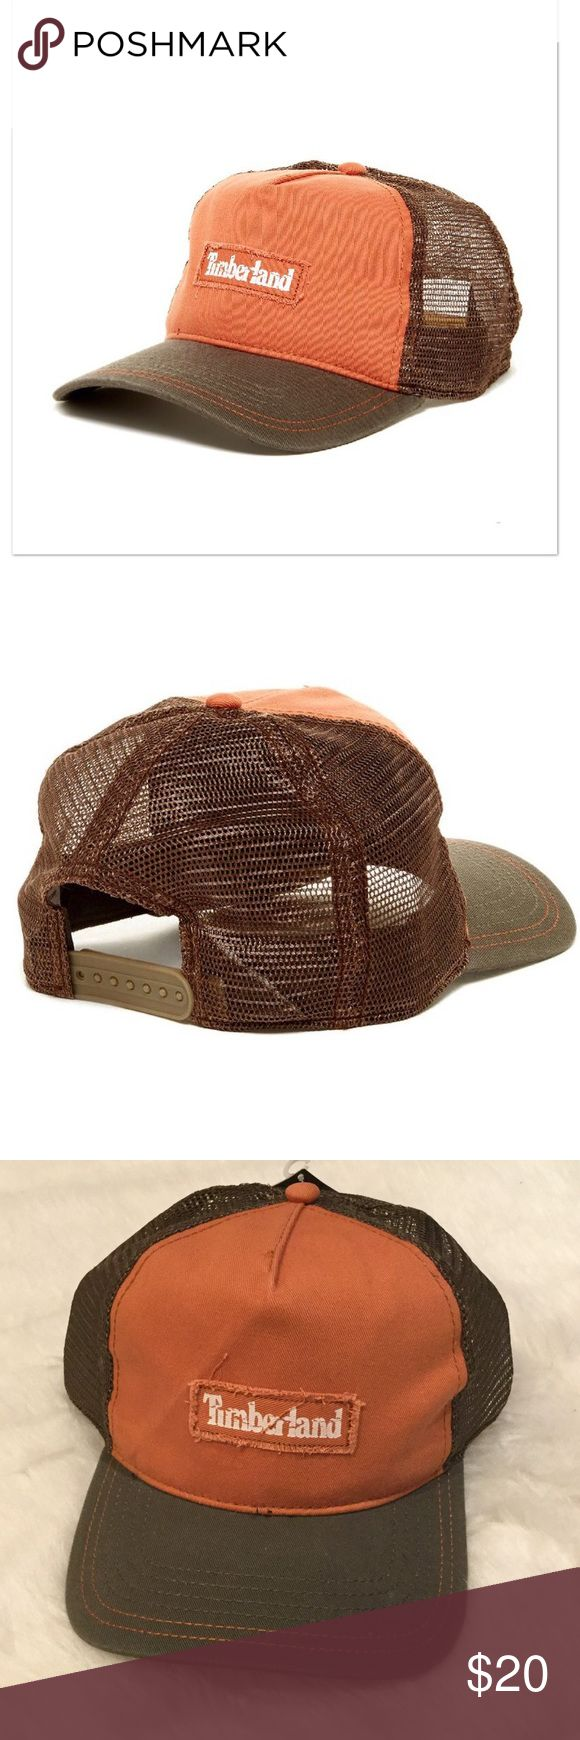 """NWT Timberland Mesh Snapback Mesh Snapback by Timberland in Light Orange.  Button top.  6 Panel construction.  Snap back closure.  Mesh insets.  Curved brim.  Approx 3"""" brim.  57% polyester, 43% cotton. Timberland Accessories Hats"""